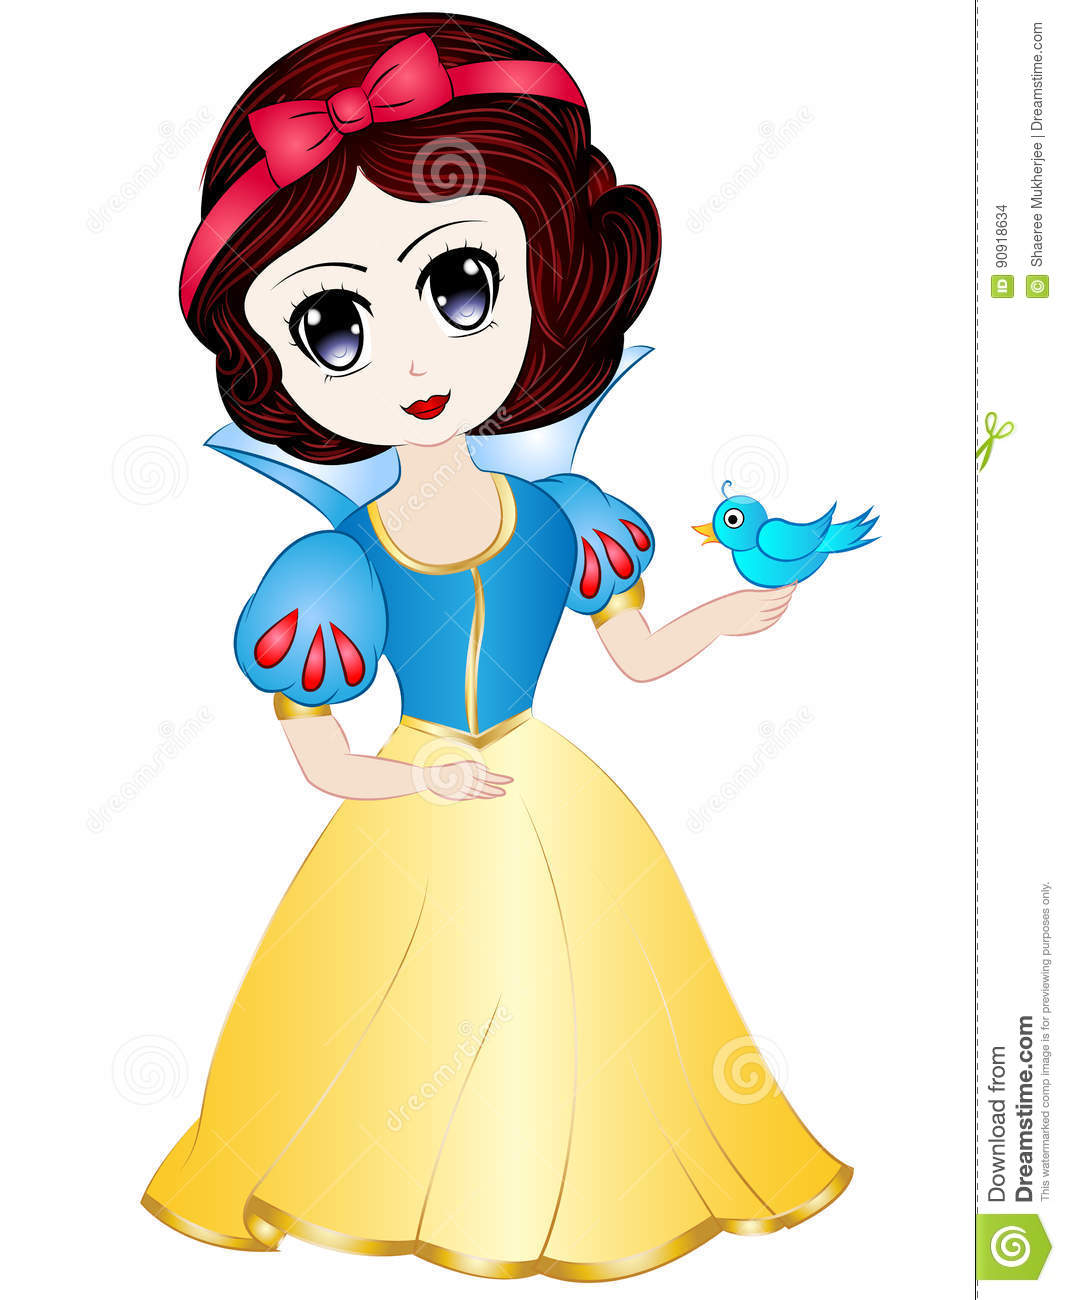 hight resolution of vector illustration clipart cartoon cute snow white